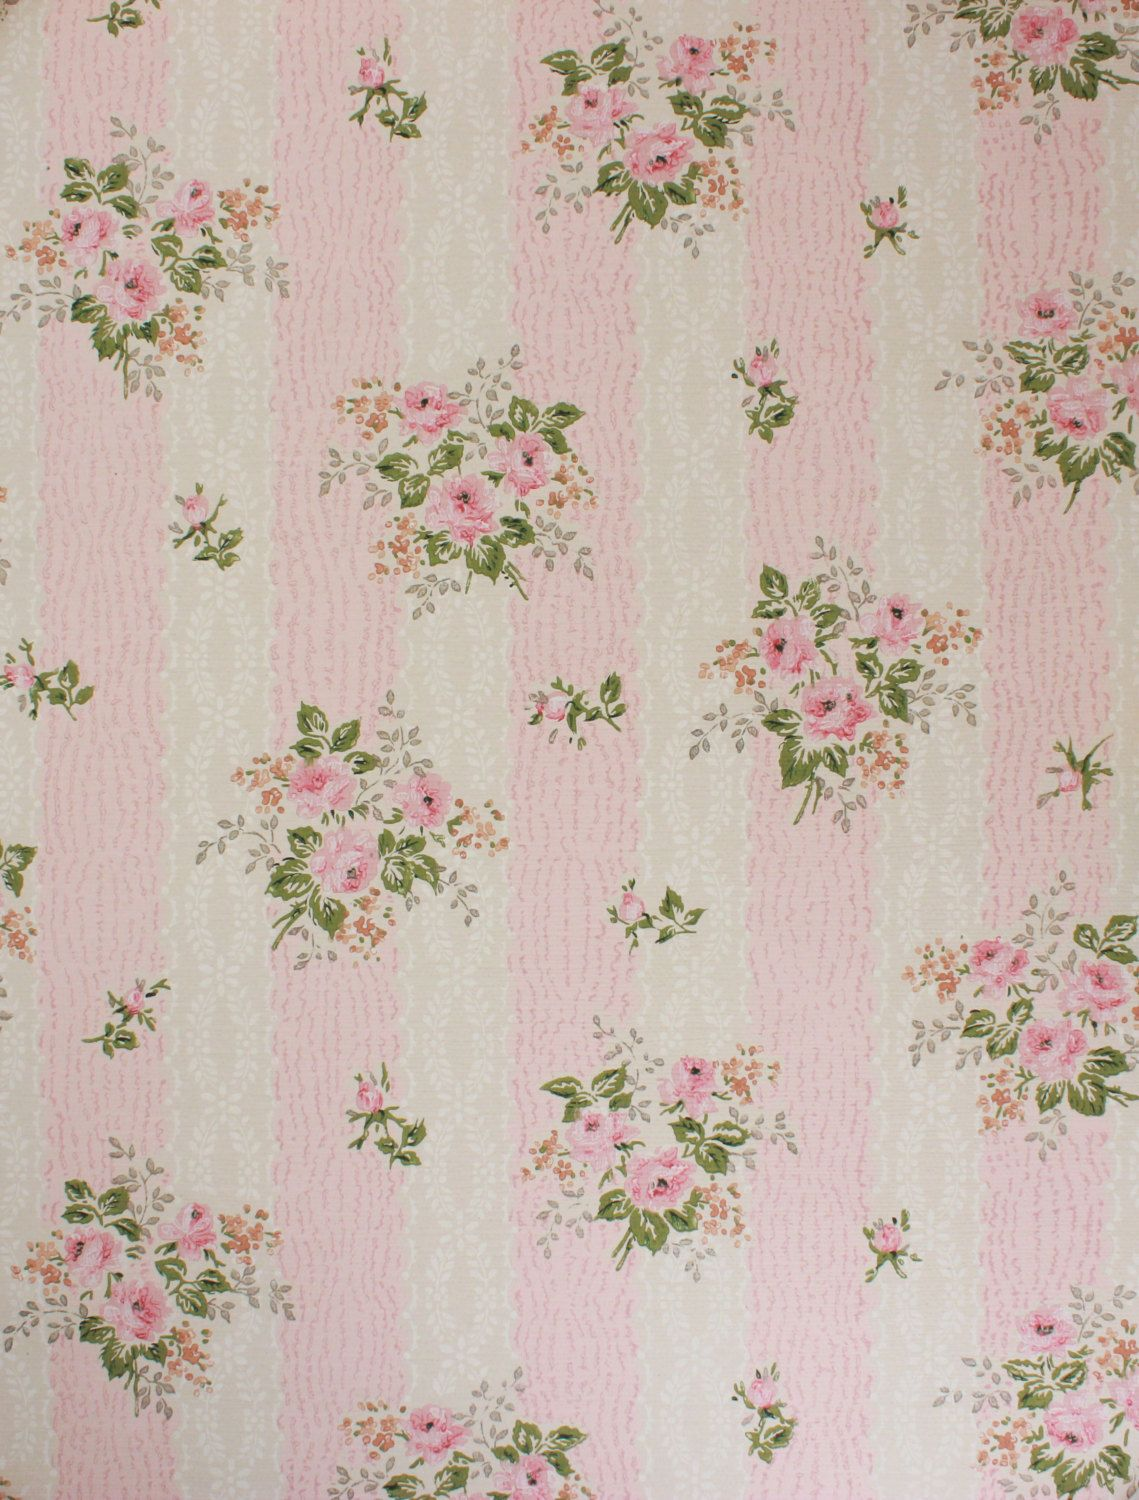 1950 S Vintage Wallpaper Pink Roses On Pink And By Rosieswallpaper Vintage Wallpaper Fabric Wallpaper Wallpaper Pink Cute